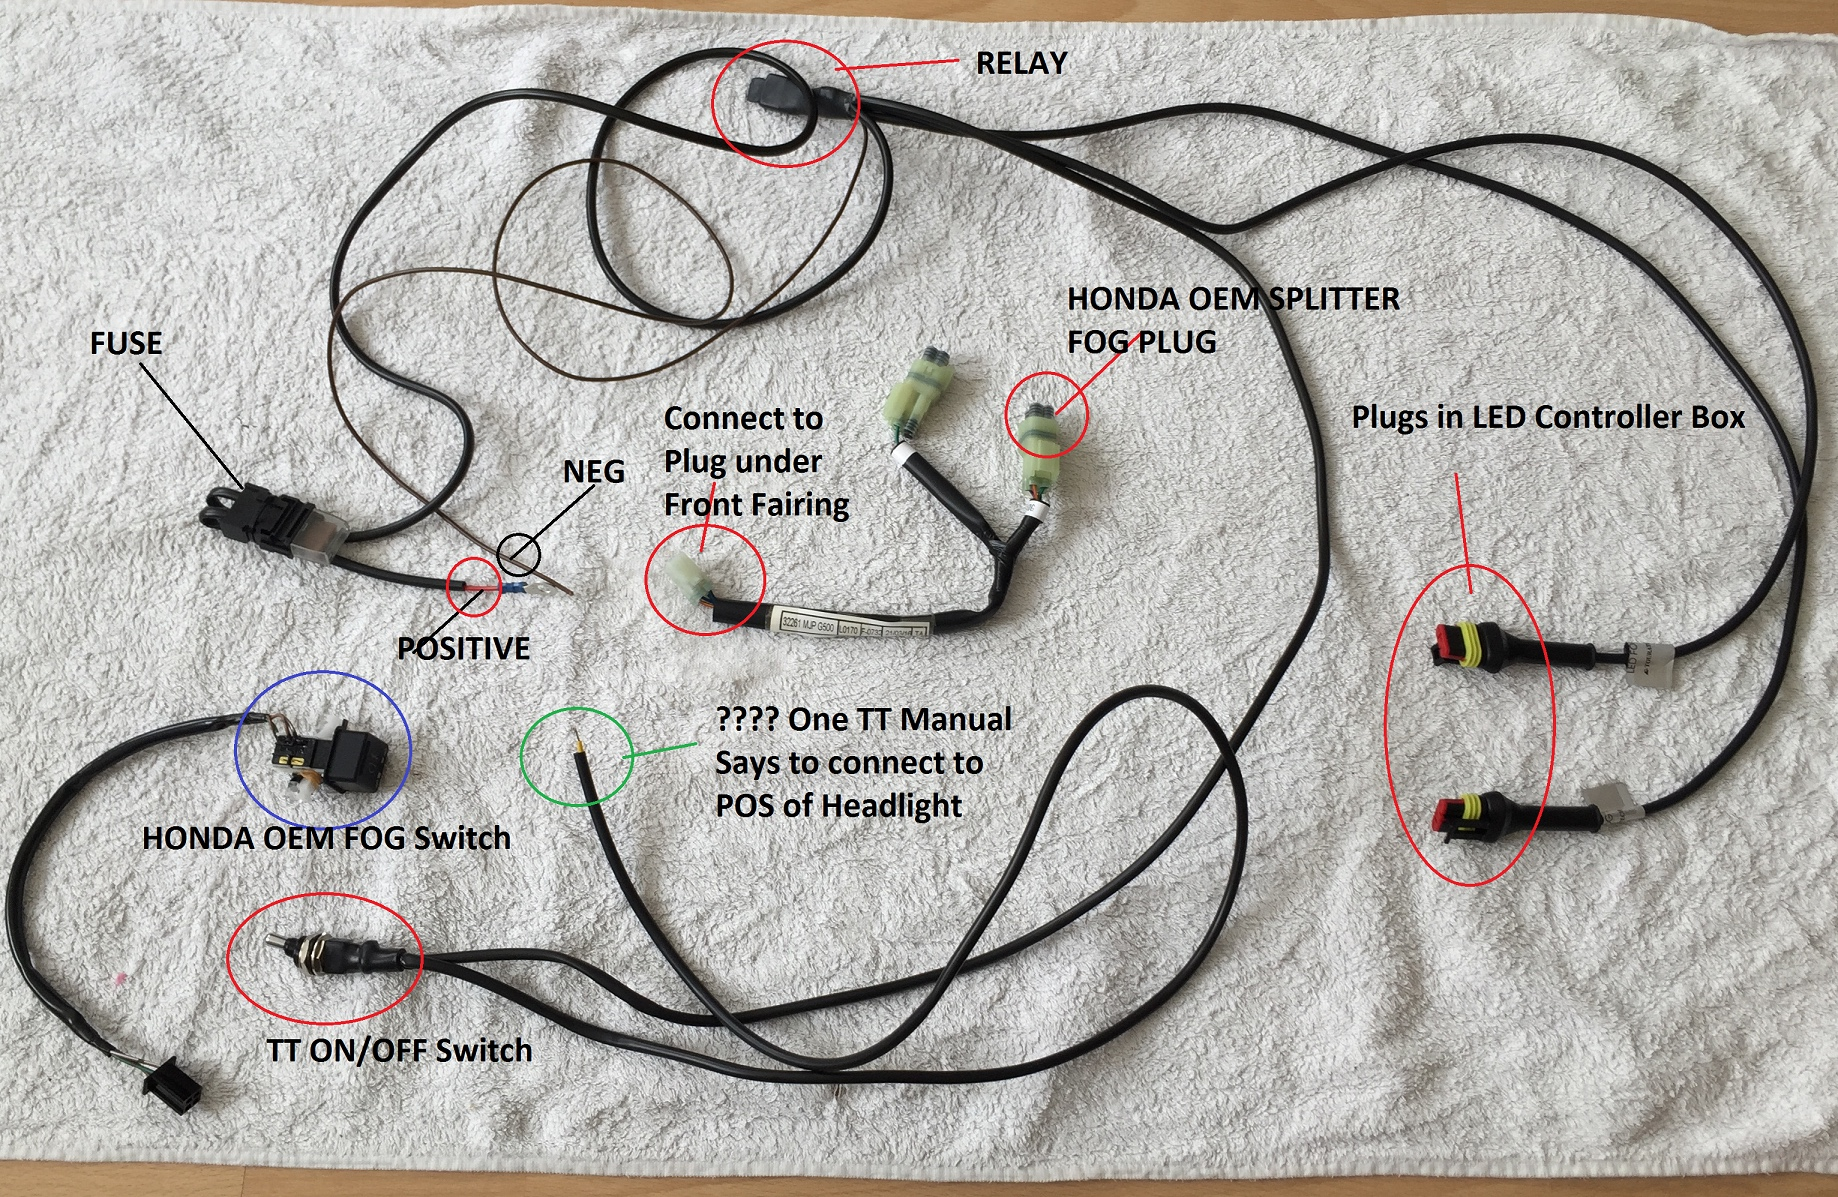 Honda Dream Yuga Wiring Diagram Library Lead 2003 Crv Fig Attached Is A Photo Of The Cable Spaghetti I Got In Tt Fog Lights Package